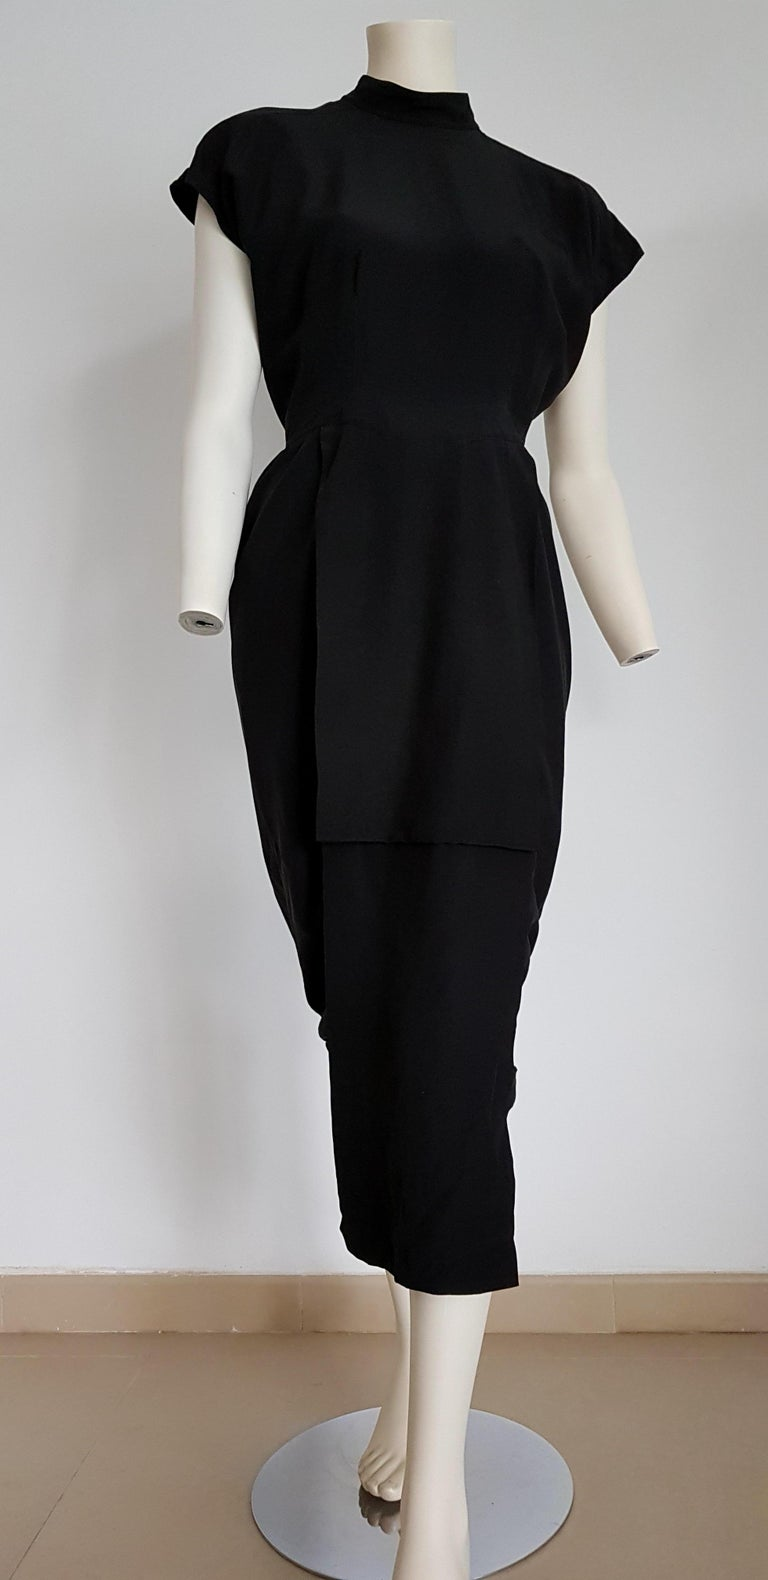 Karl LAGERFELD Haute Couture, unique kimono model by Lagerfeld, black silk gown - Unworn, New.  SIZE: equivalent to about Small / Medium, please review approx measurements as follows in cm: lenght 130, chest underarm to underarm 50, bust